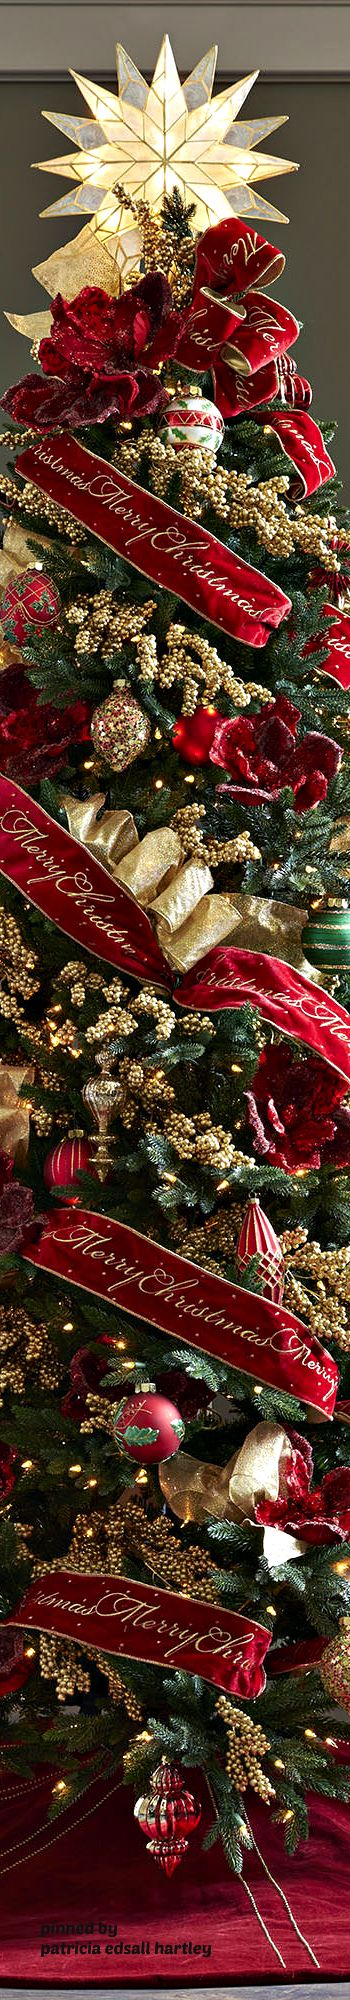 CHRISTMAS TREE~RED & GOLD TREE: